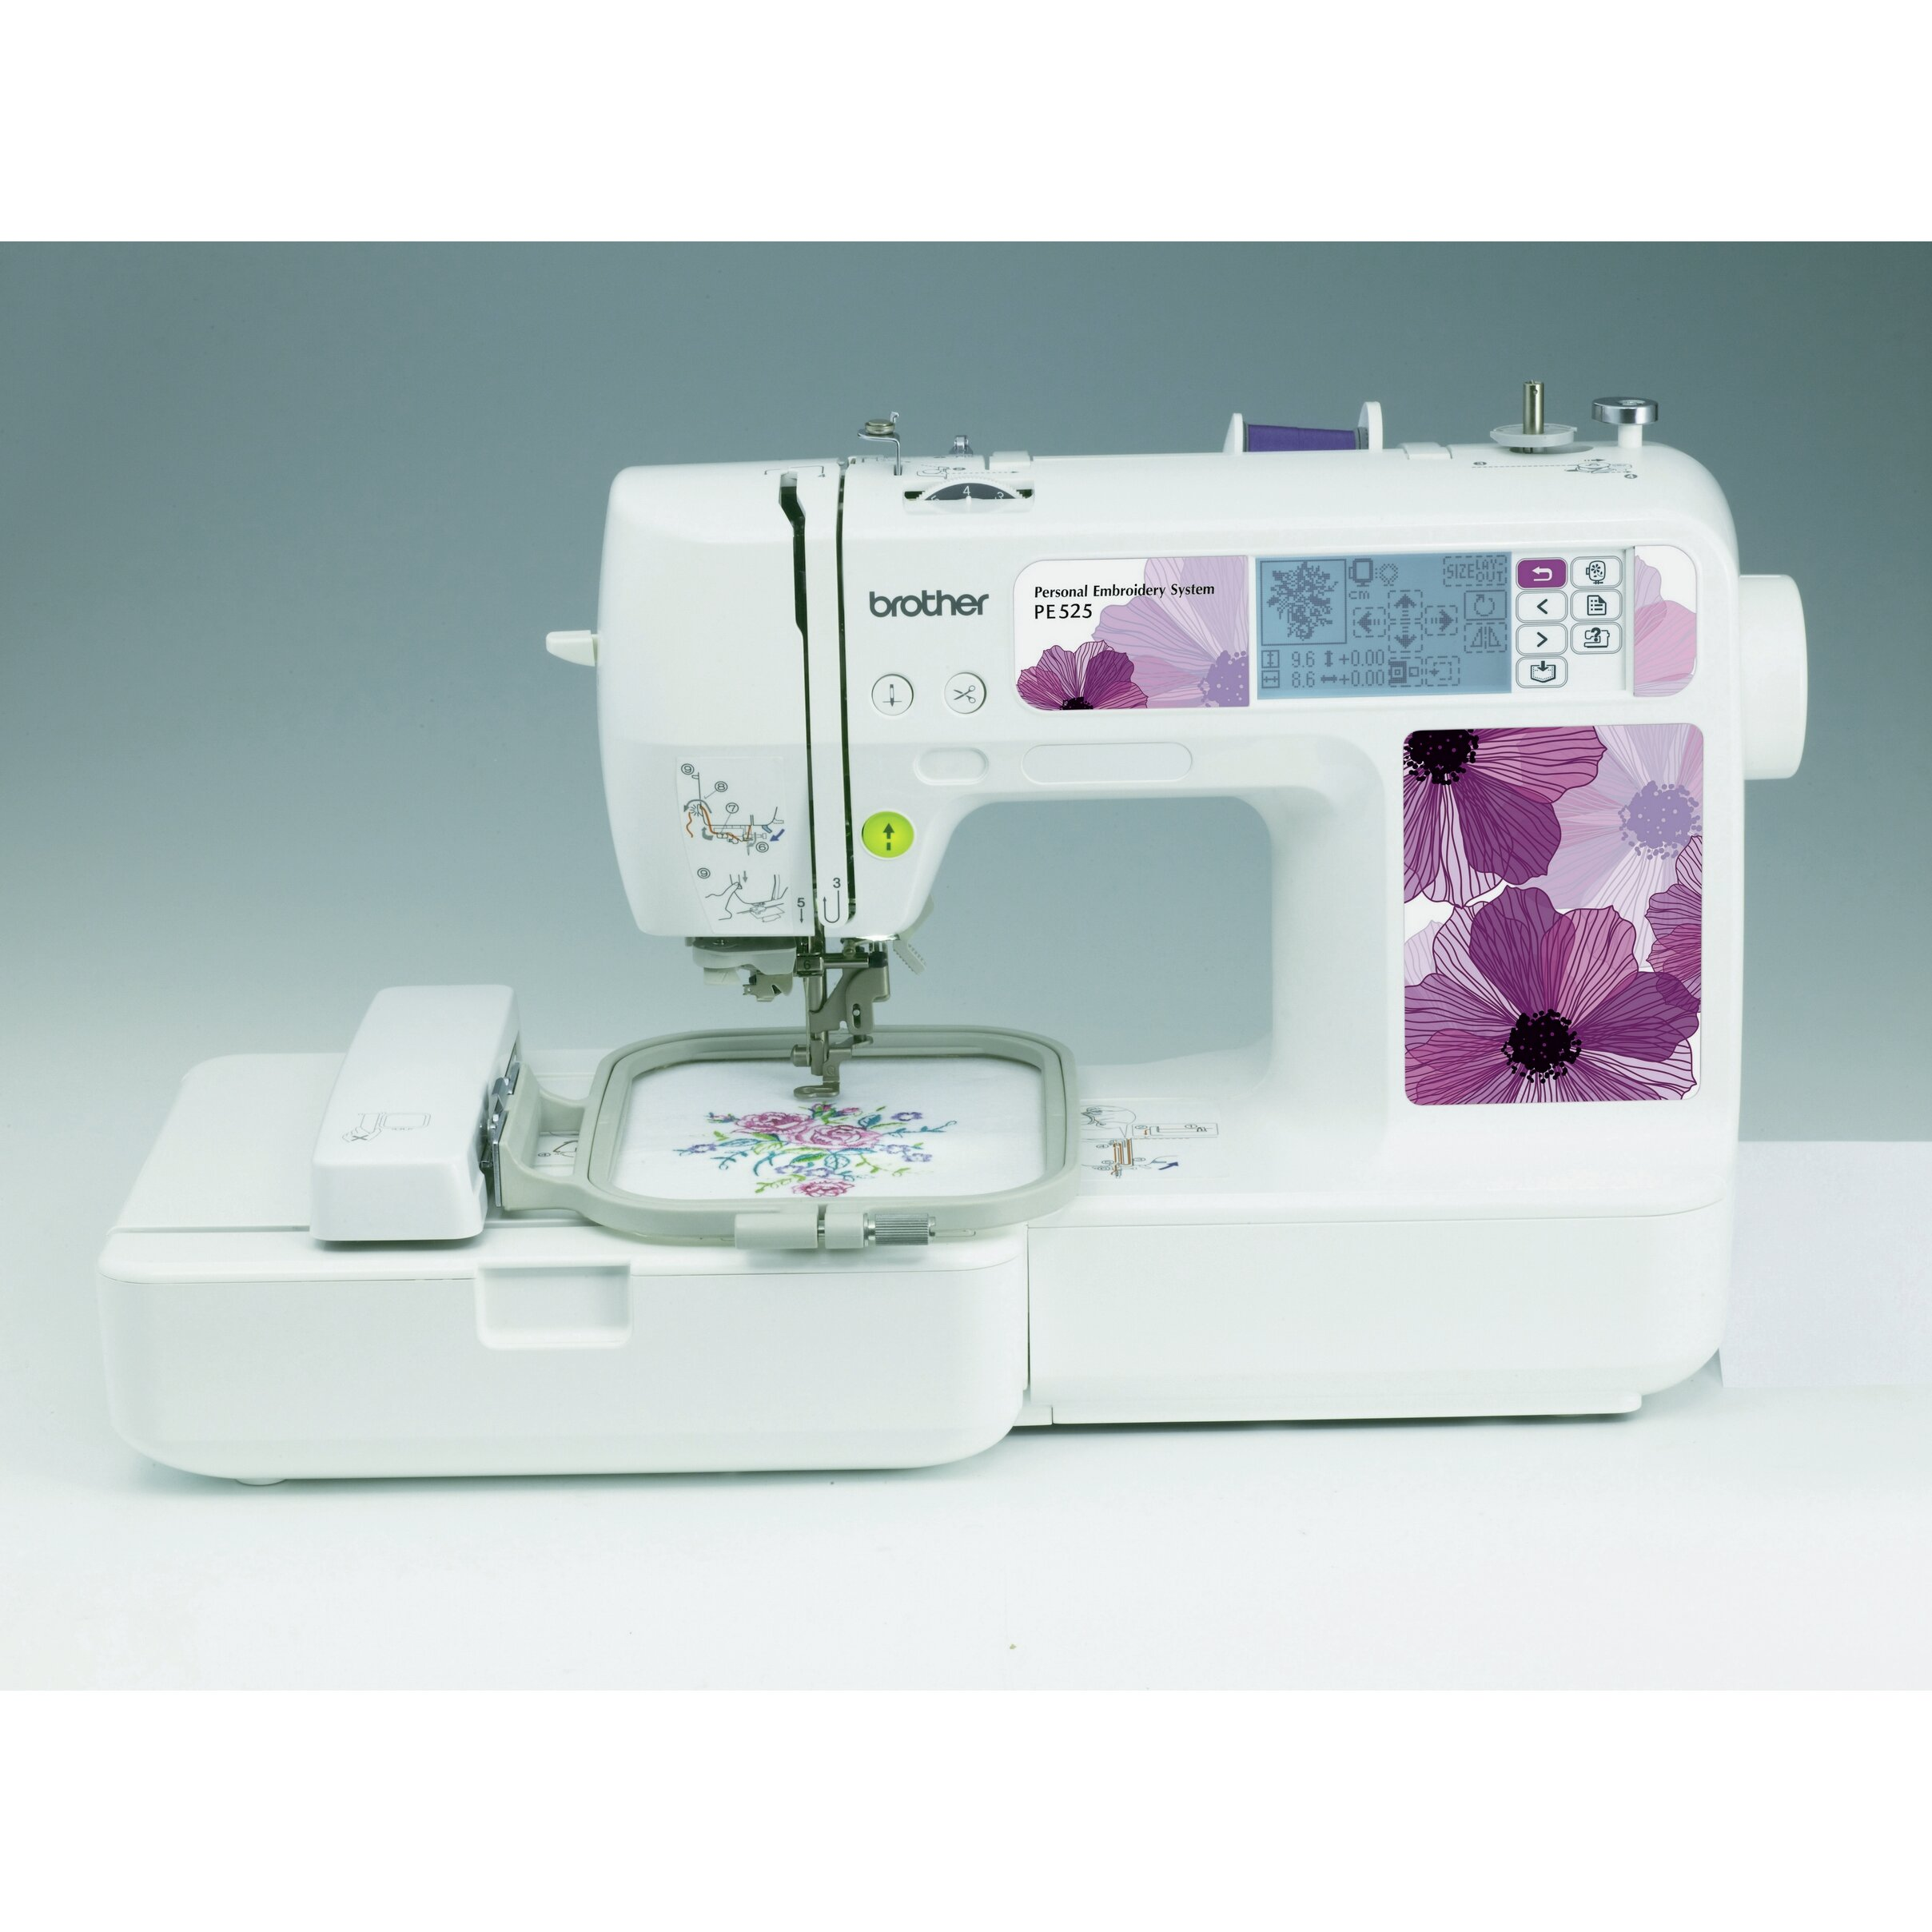 Brother sewing 70 design embroidery machine reviews for Decor 99 sewing machine